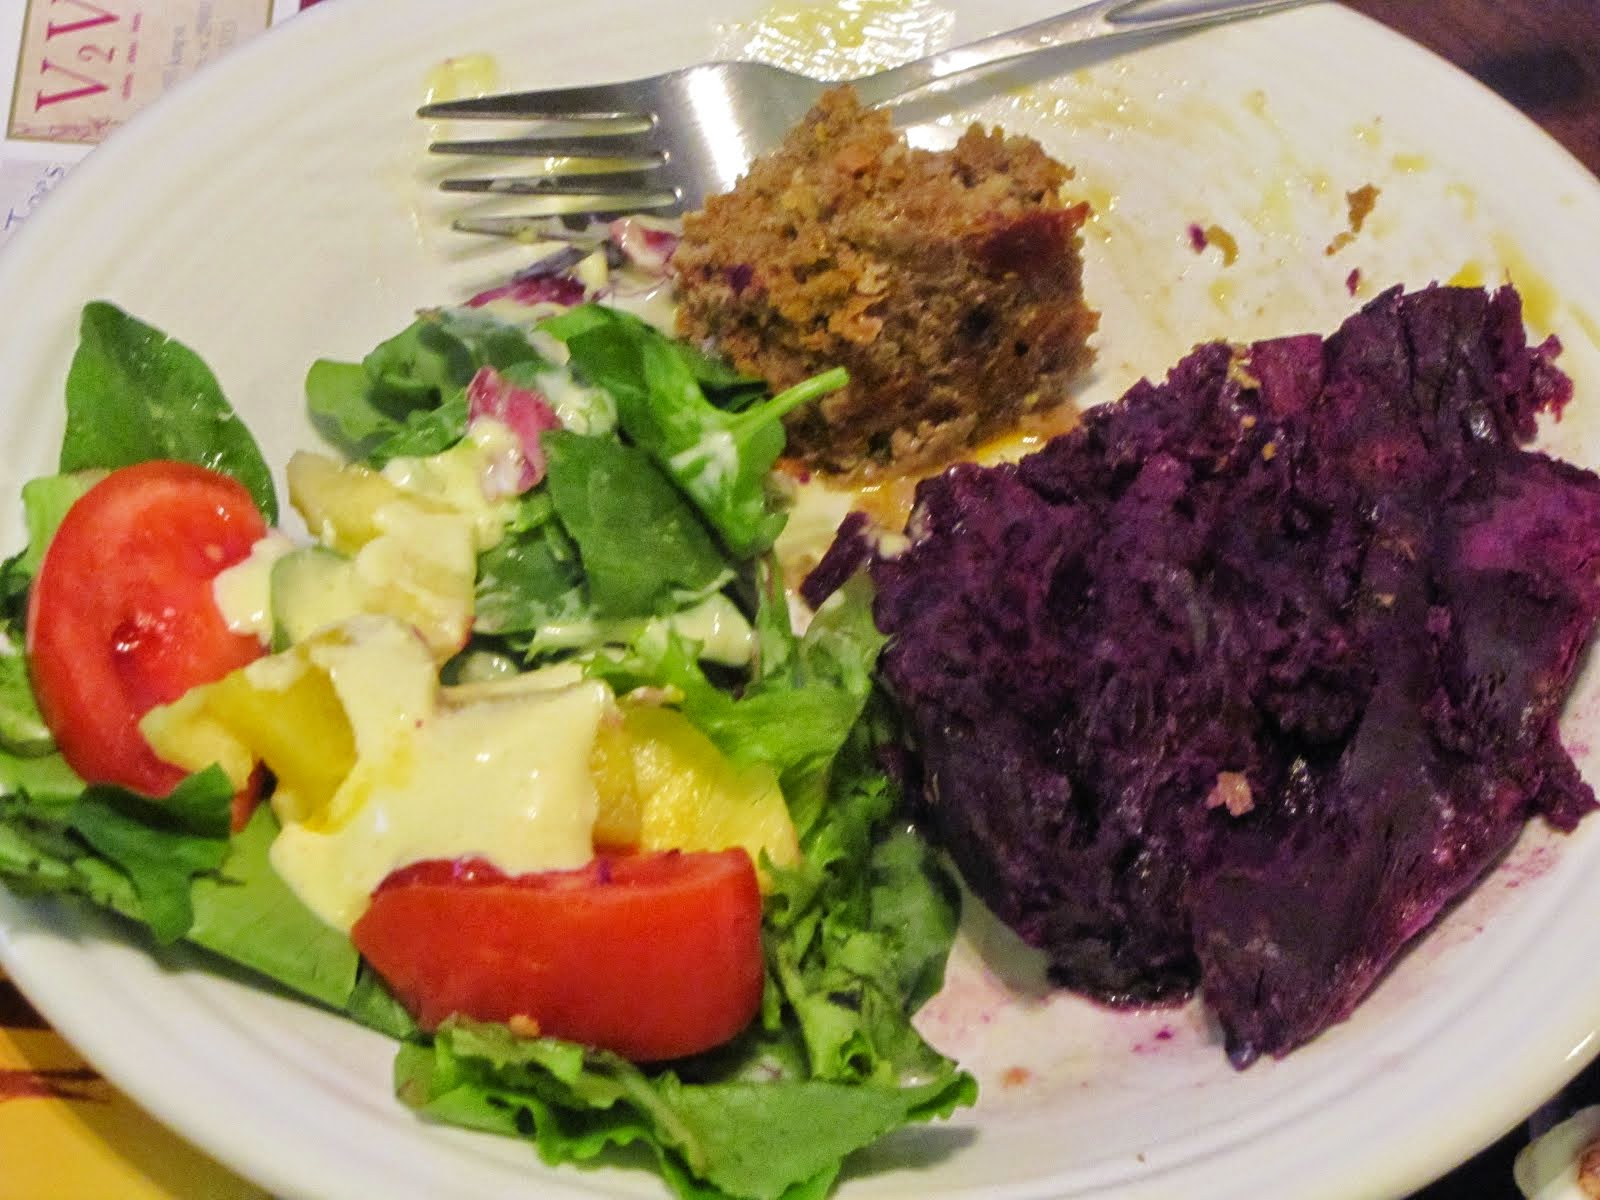 Meatloaf, Purple Sweet Potato, Salad